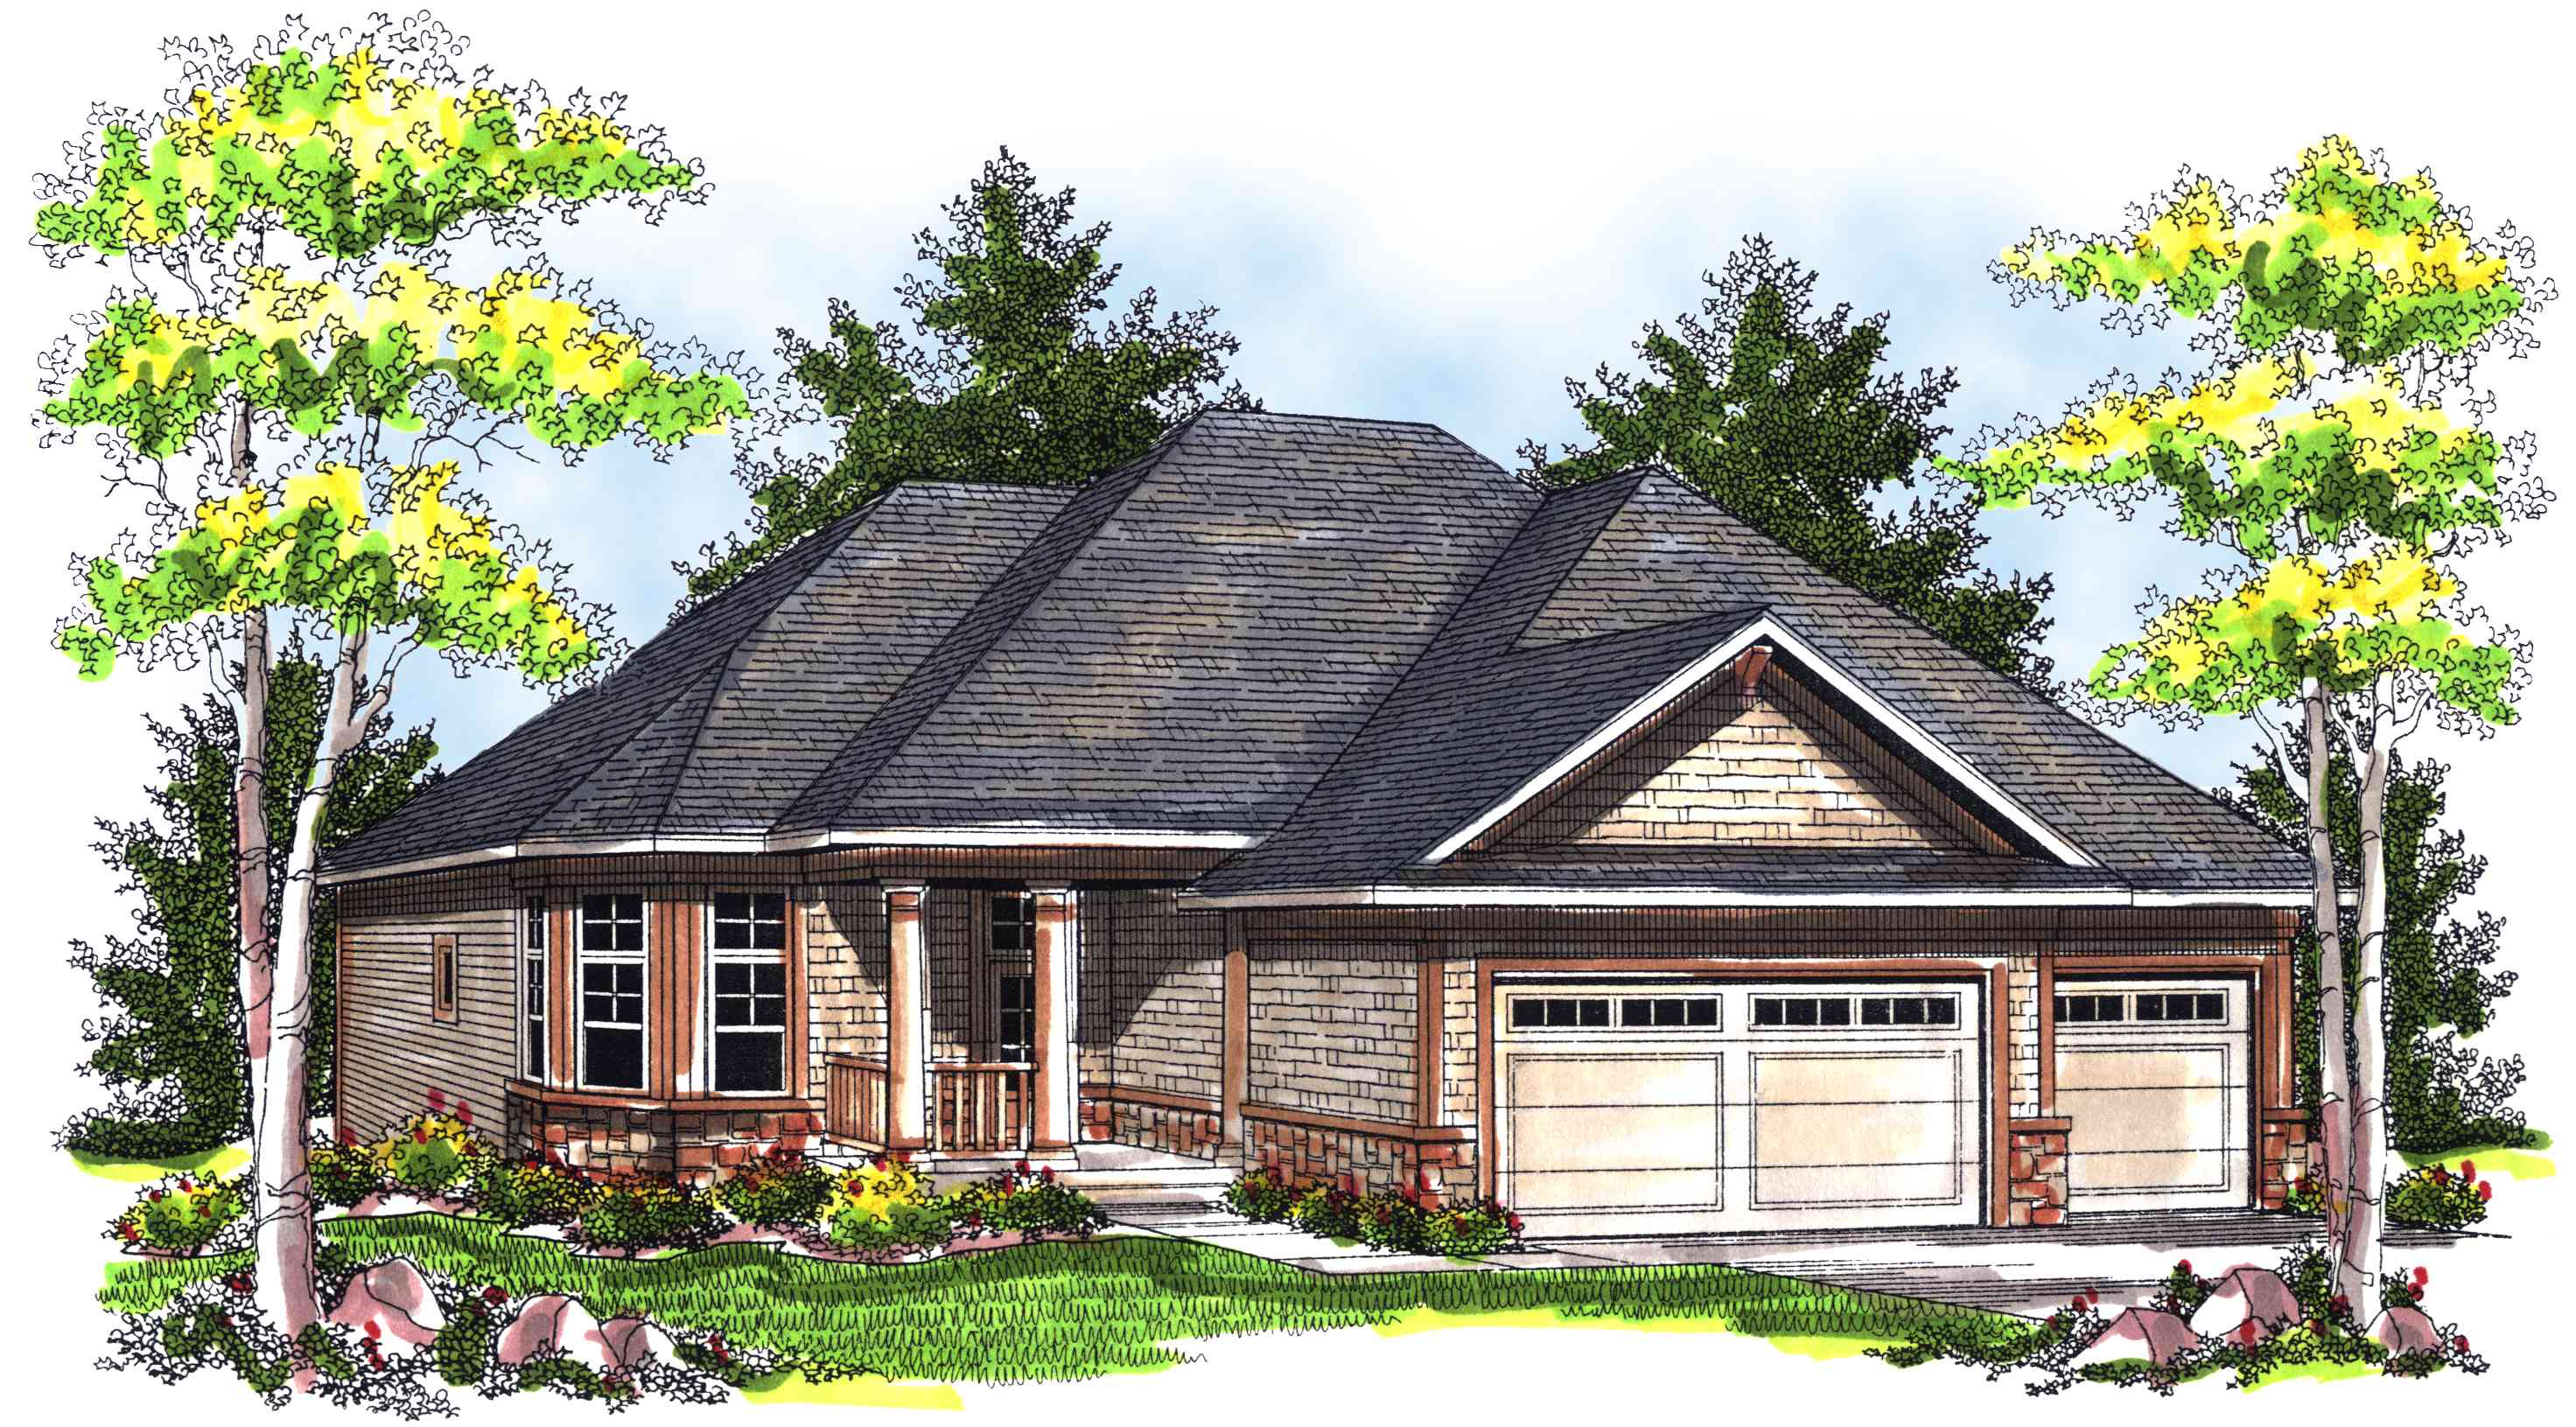 Affordable narrow ranch 89313ah 1st floor master suite for Narrow ranch house plans